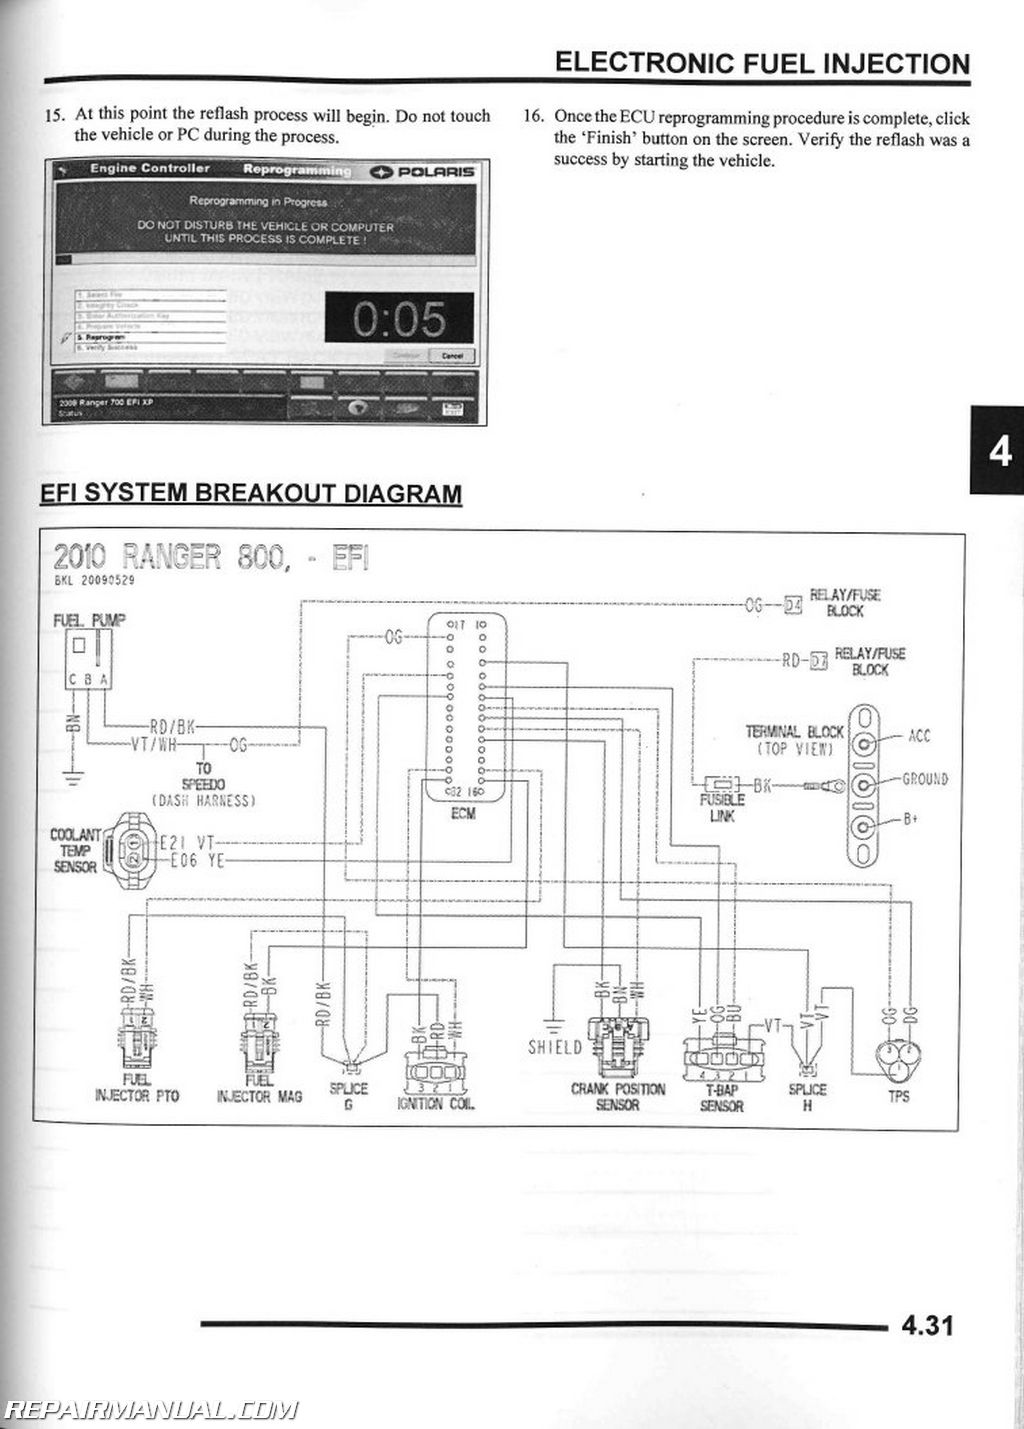 1756 Polaris Ranger 700 Xp Wiring Diagram | Wiring LibraryFX Renew